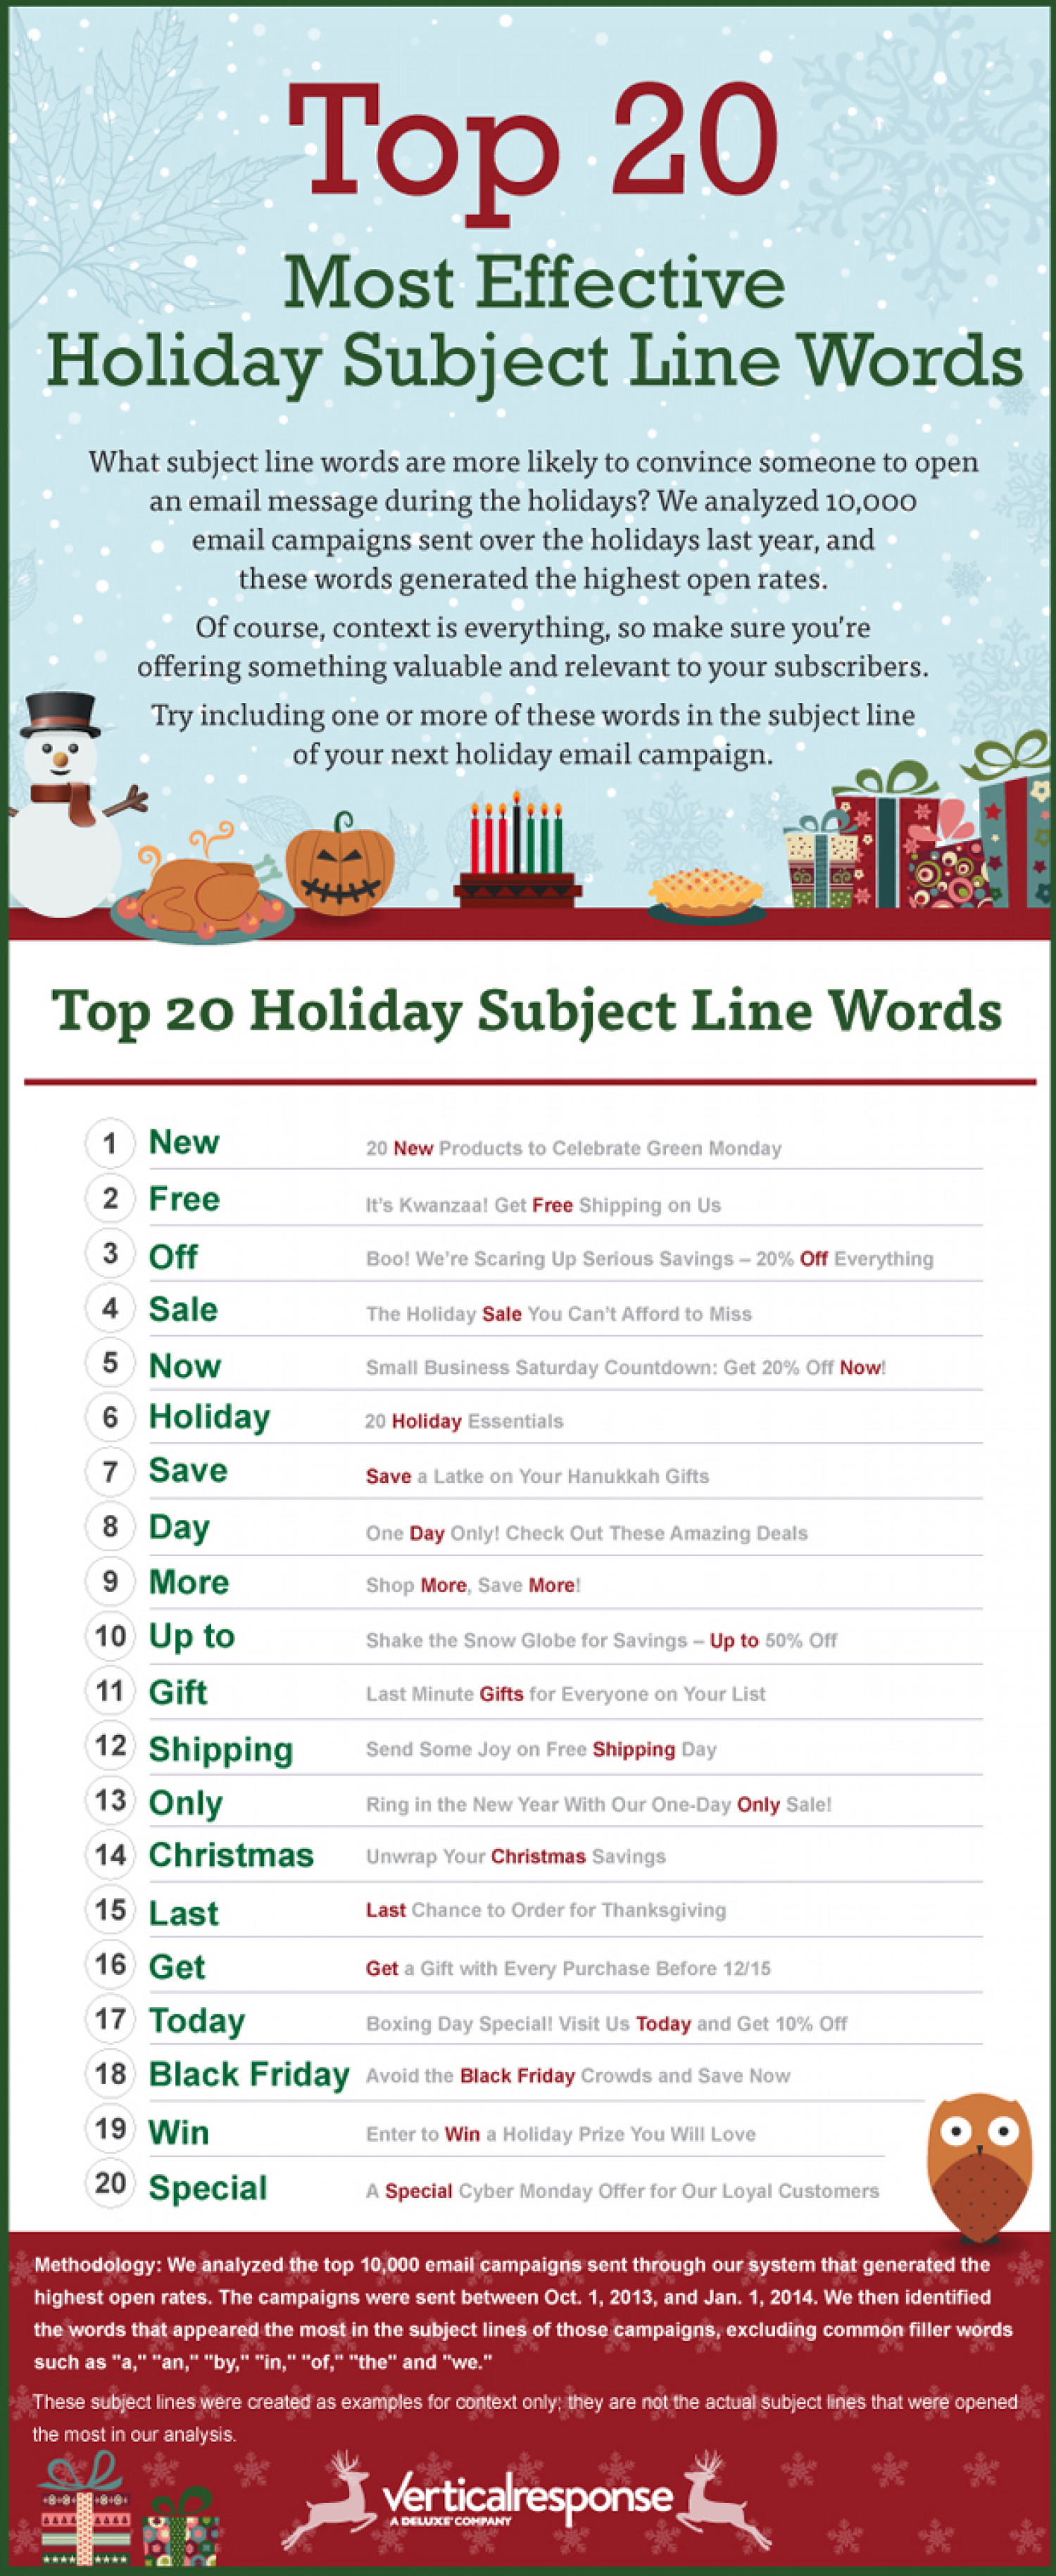 The Top 20 Most Effective Holiday Subject Line Words  Infographic